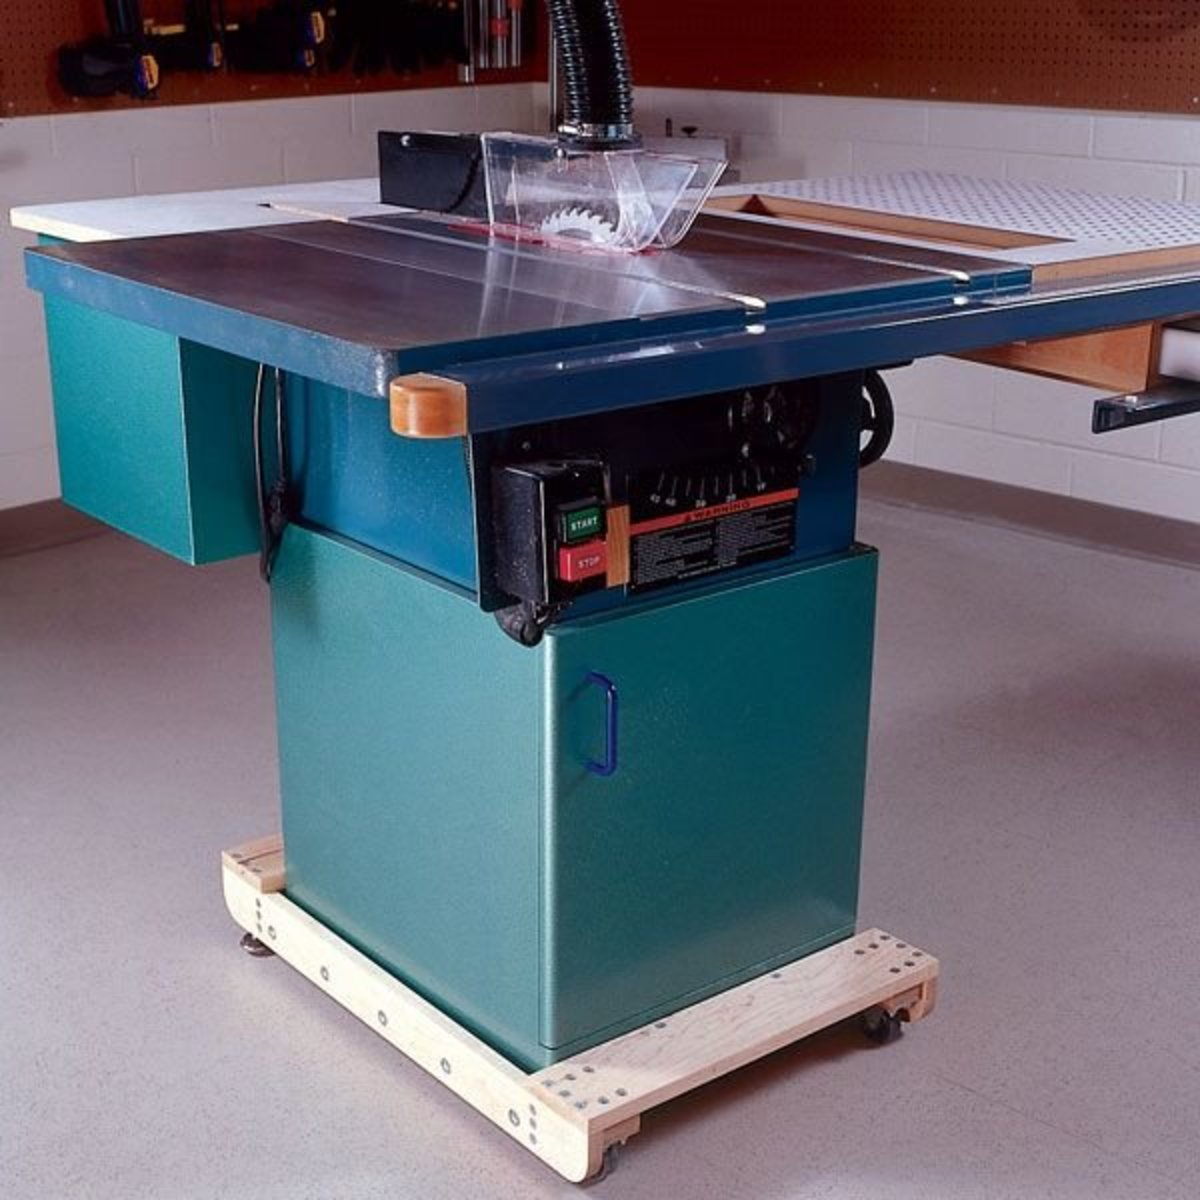 Woodworking Project Paper Plan To Build 3 In 1 Tablesaw Upgrade And